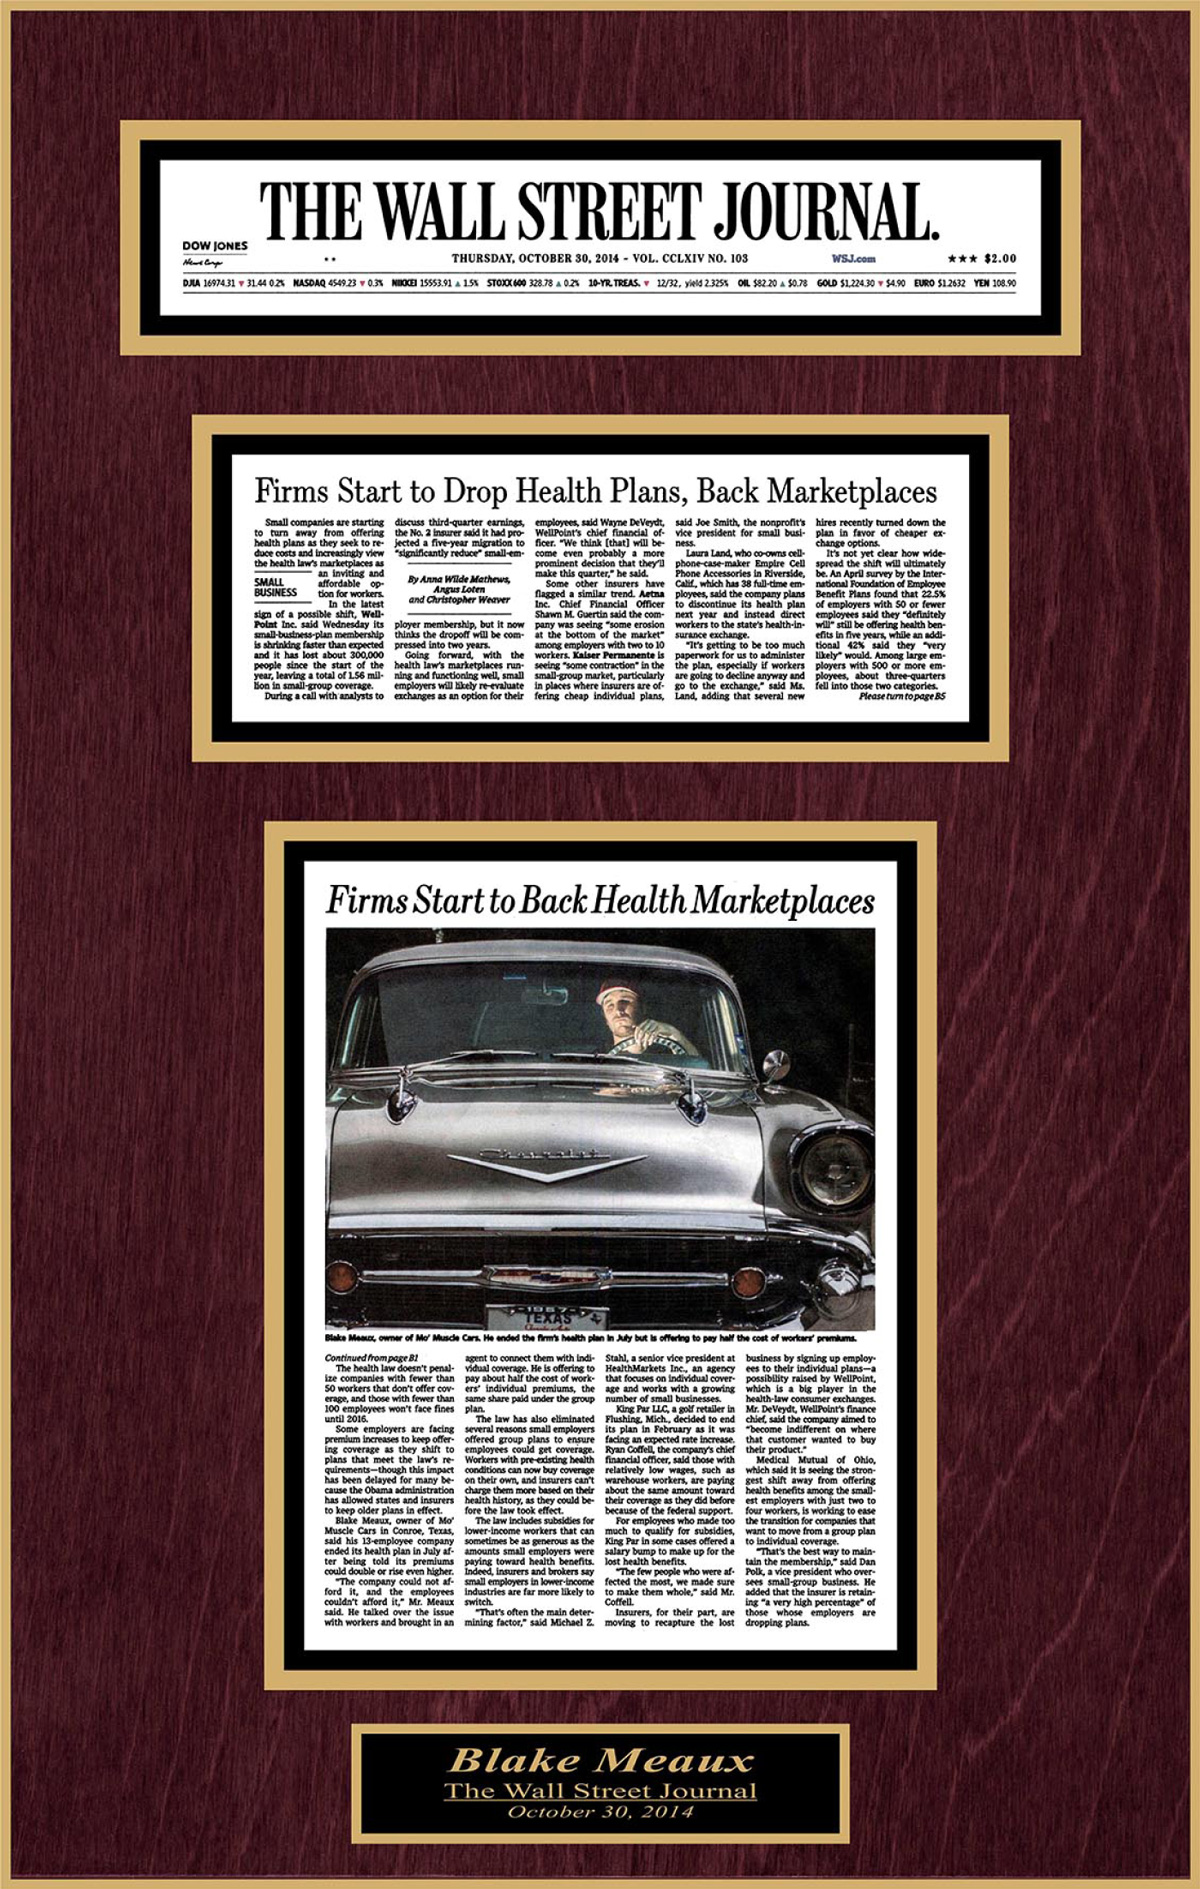 Wall Street Journal article featuring Blake Meaux and Mo Muscle Cars